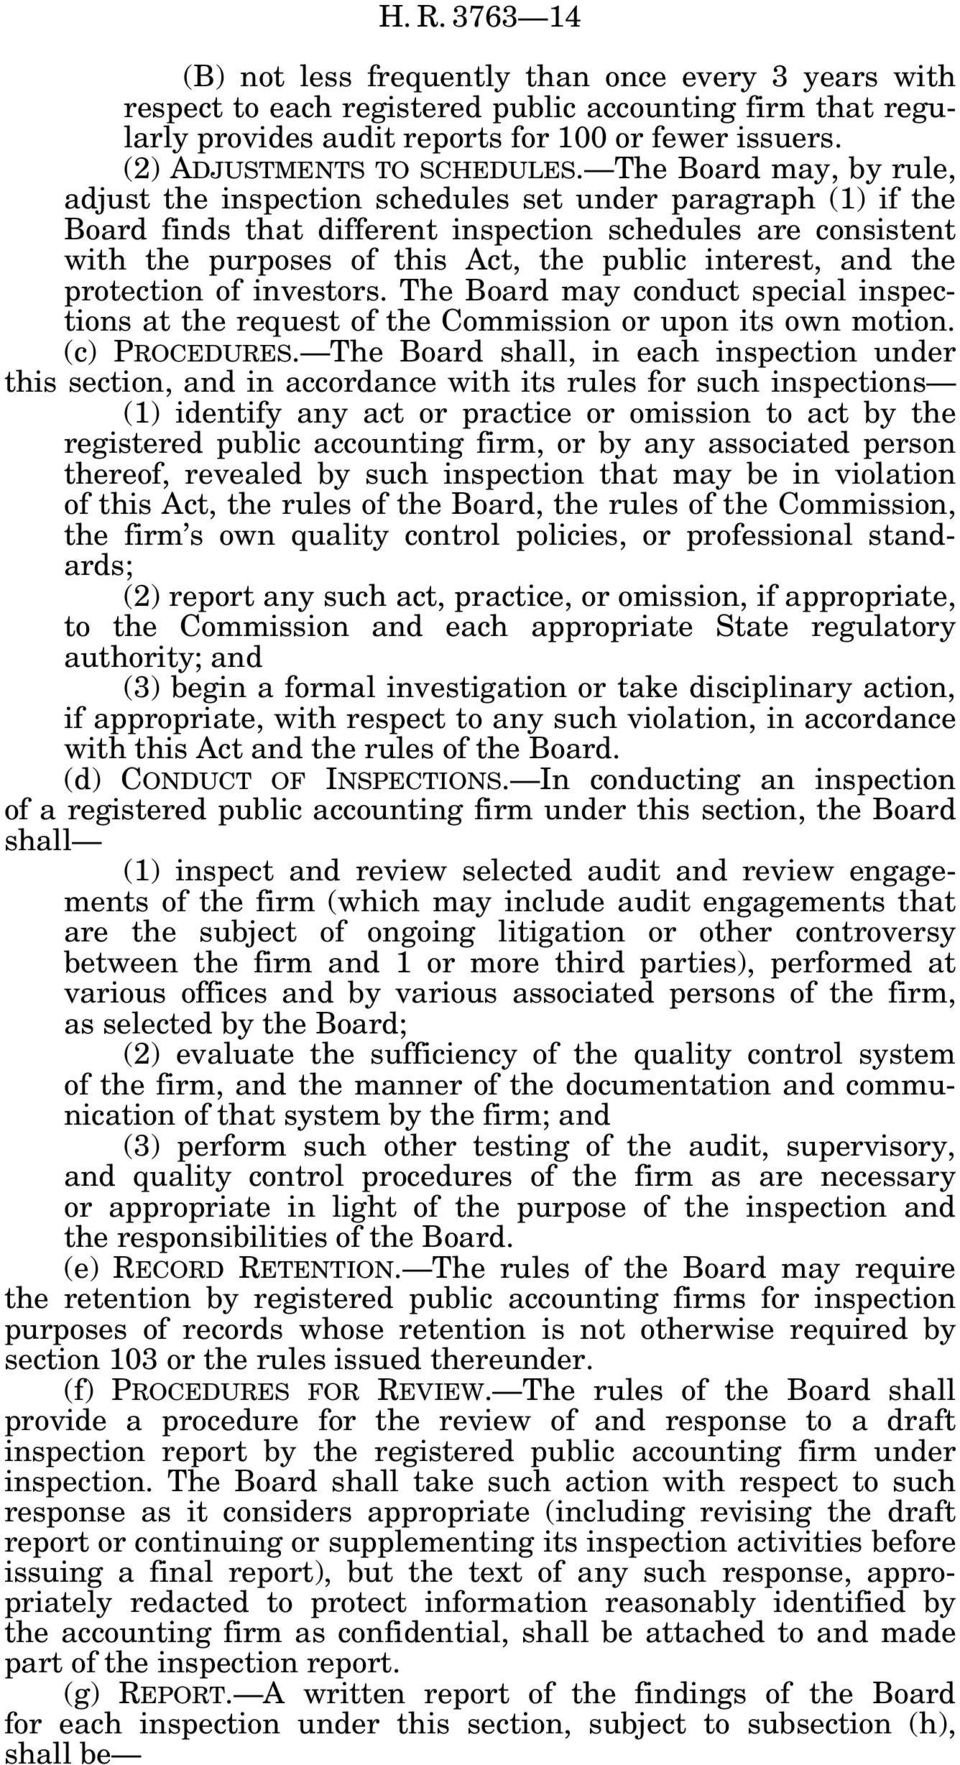 The Board may, by rule, adjust the inspection schedules set under paragraph (1) if the Board finds that different inspection schedules are consistent with the purposes of this Act, the public